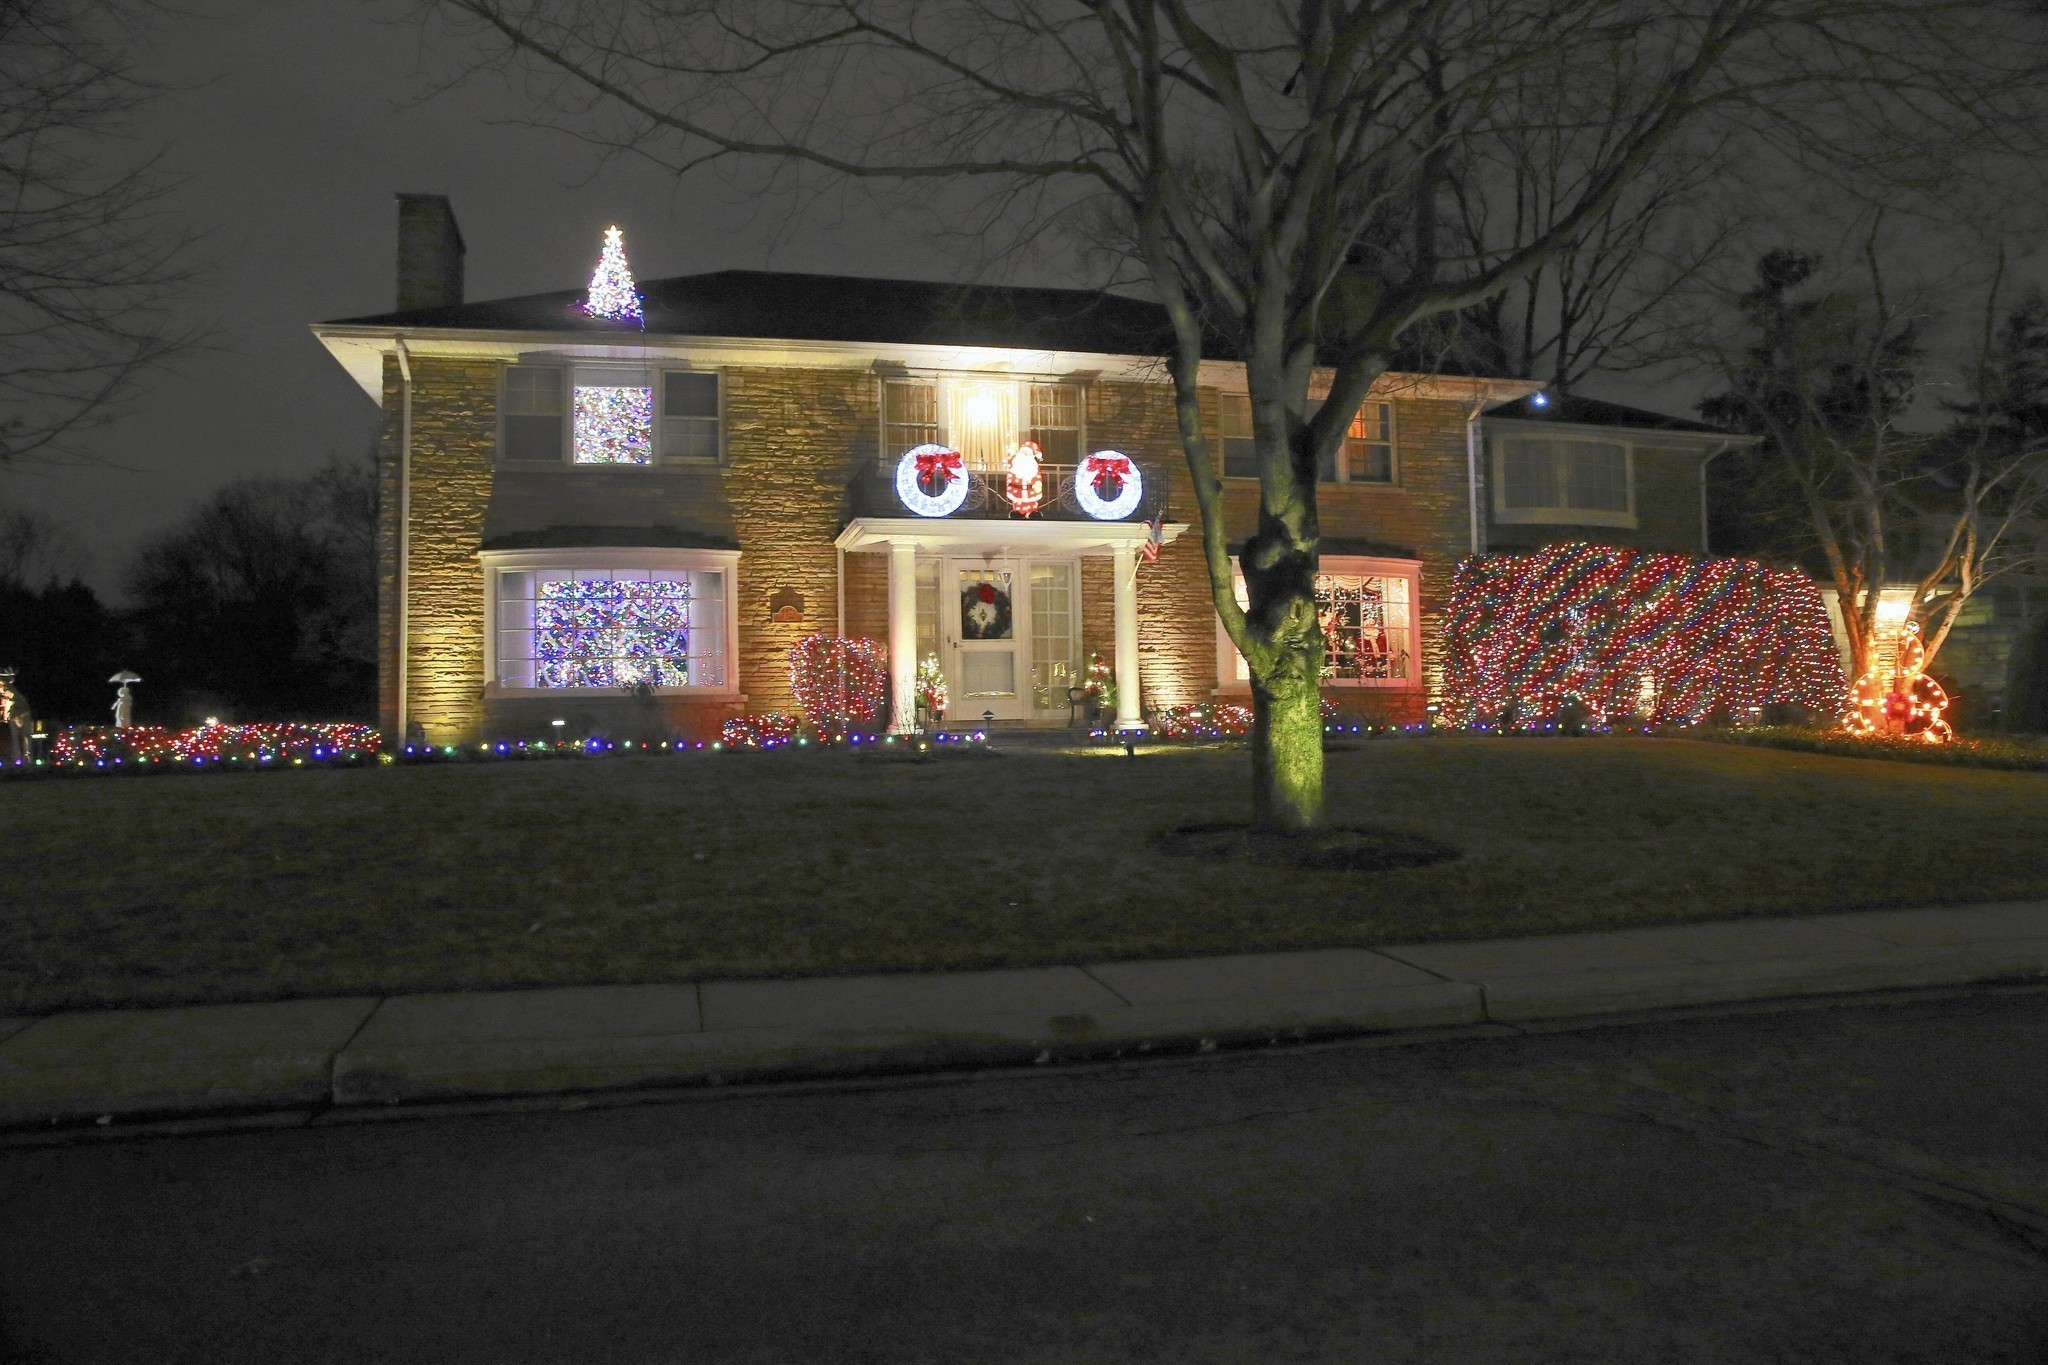 Top Chicagoland neighborhoods for holiday lights - Chicago Tribune